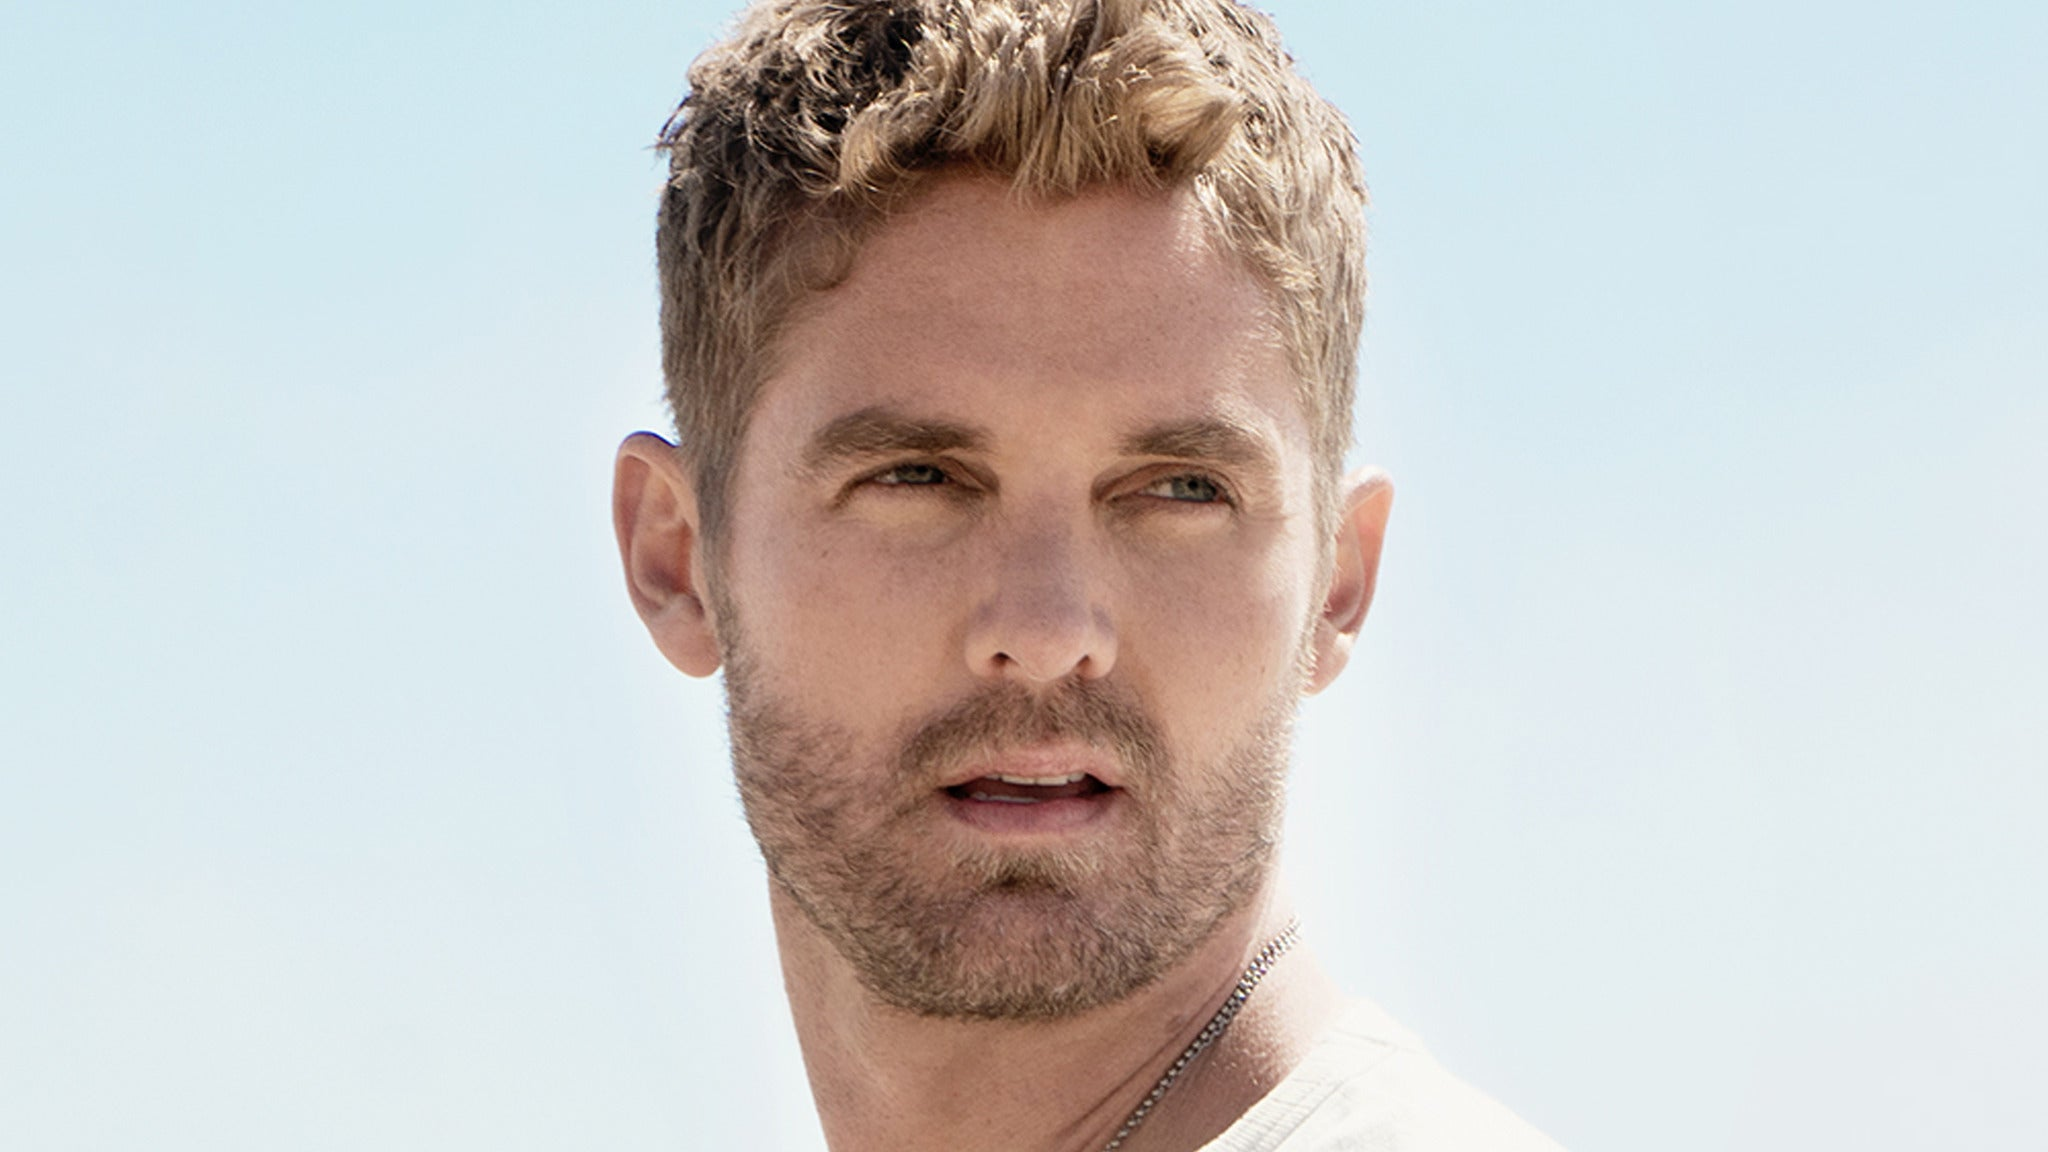 Brett Young at Britt Pavilion